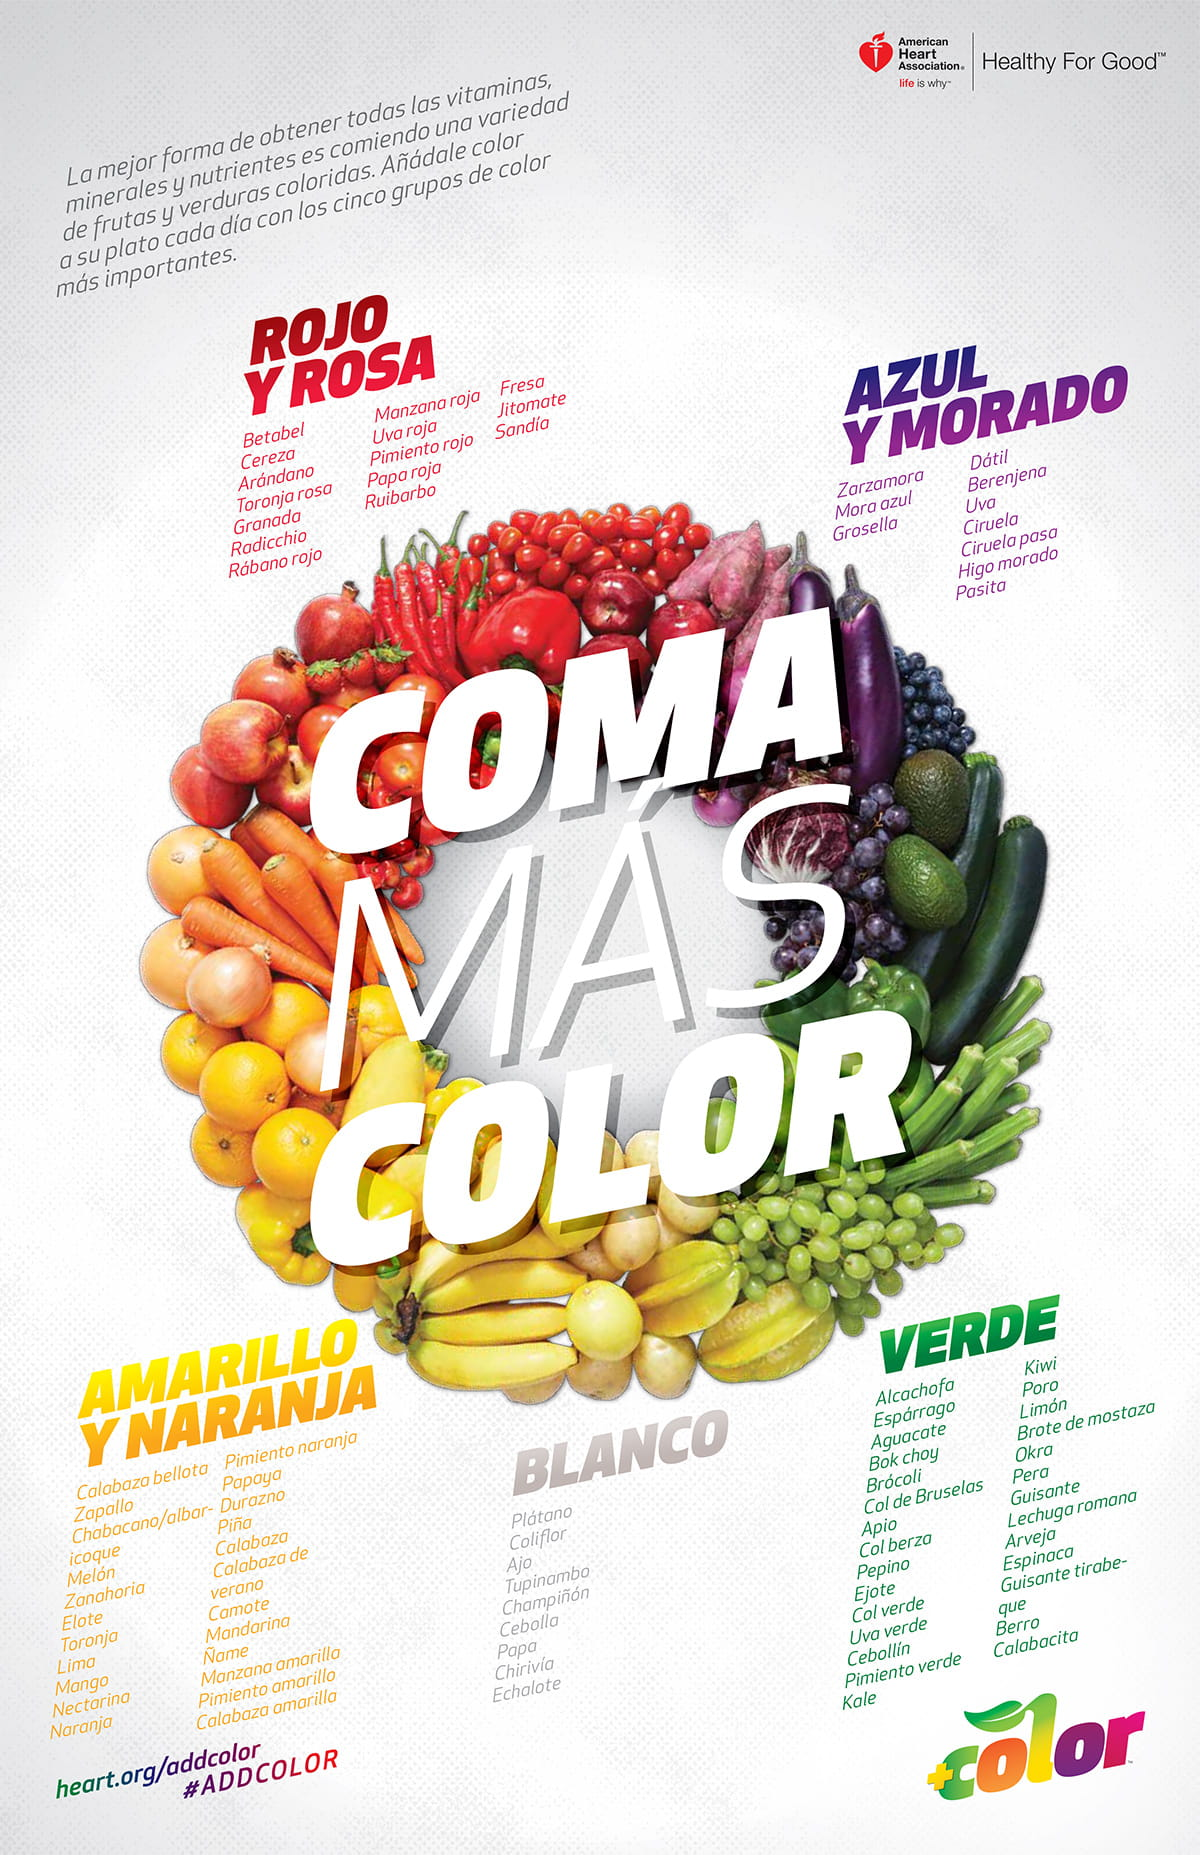 Eat more color infographic in Spanish